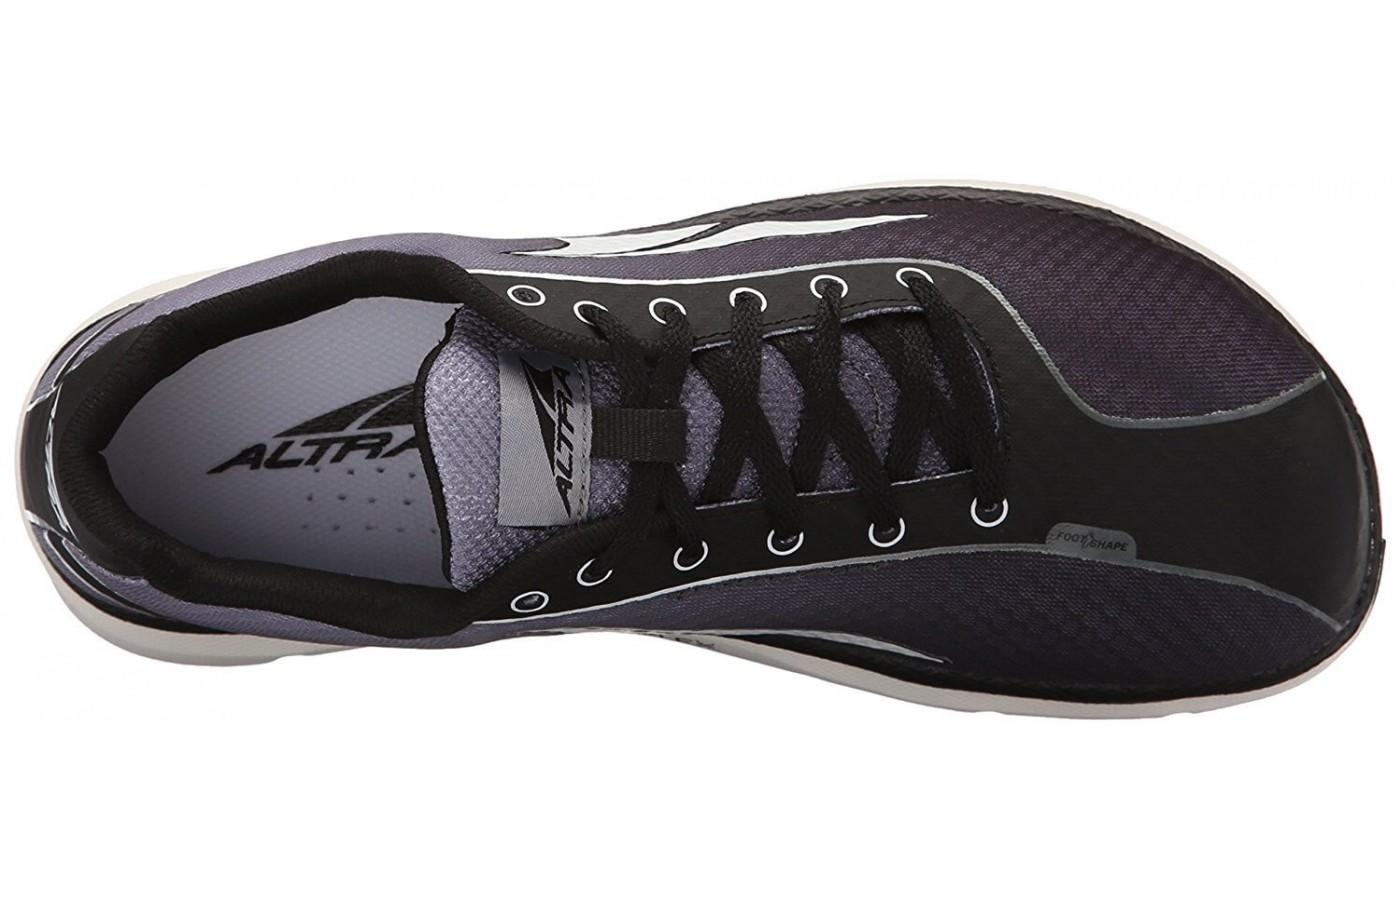 Breathable Mesh Upper of the altra one 2.5